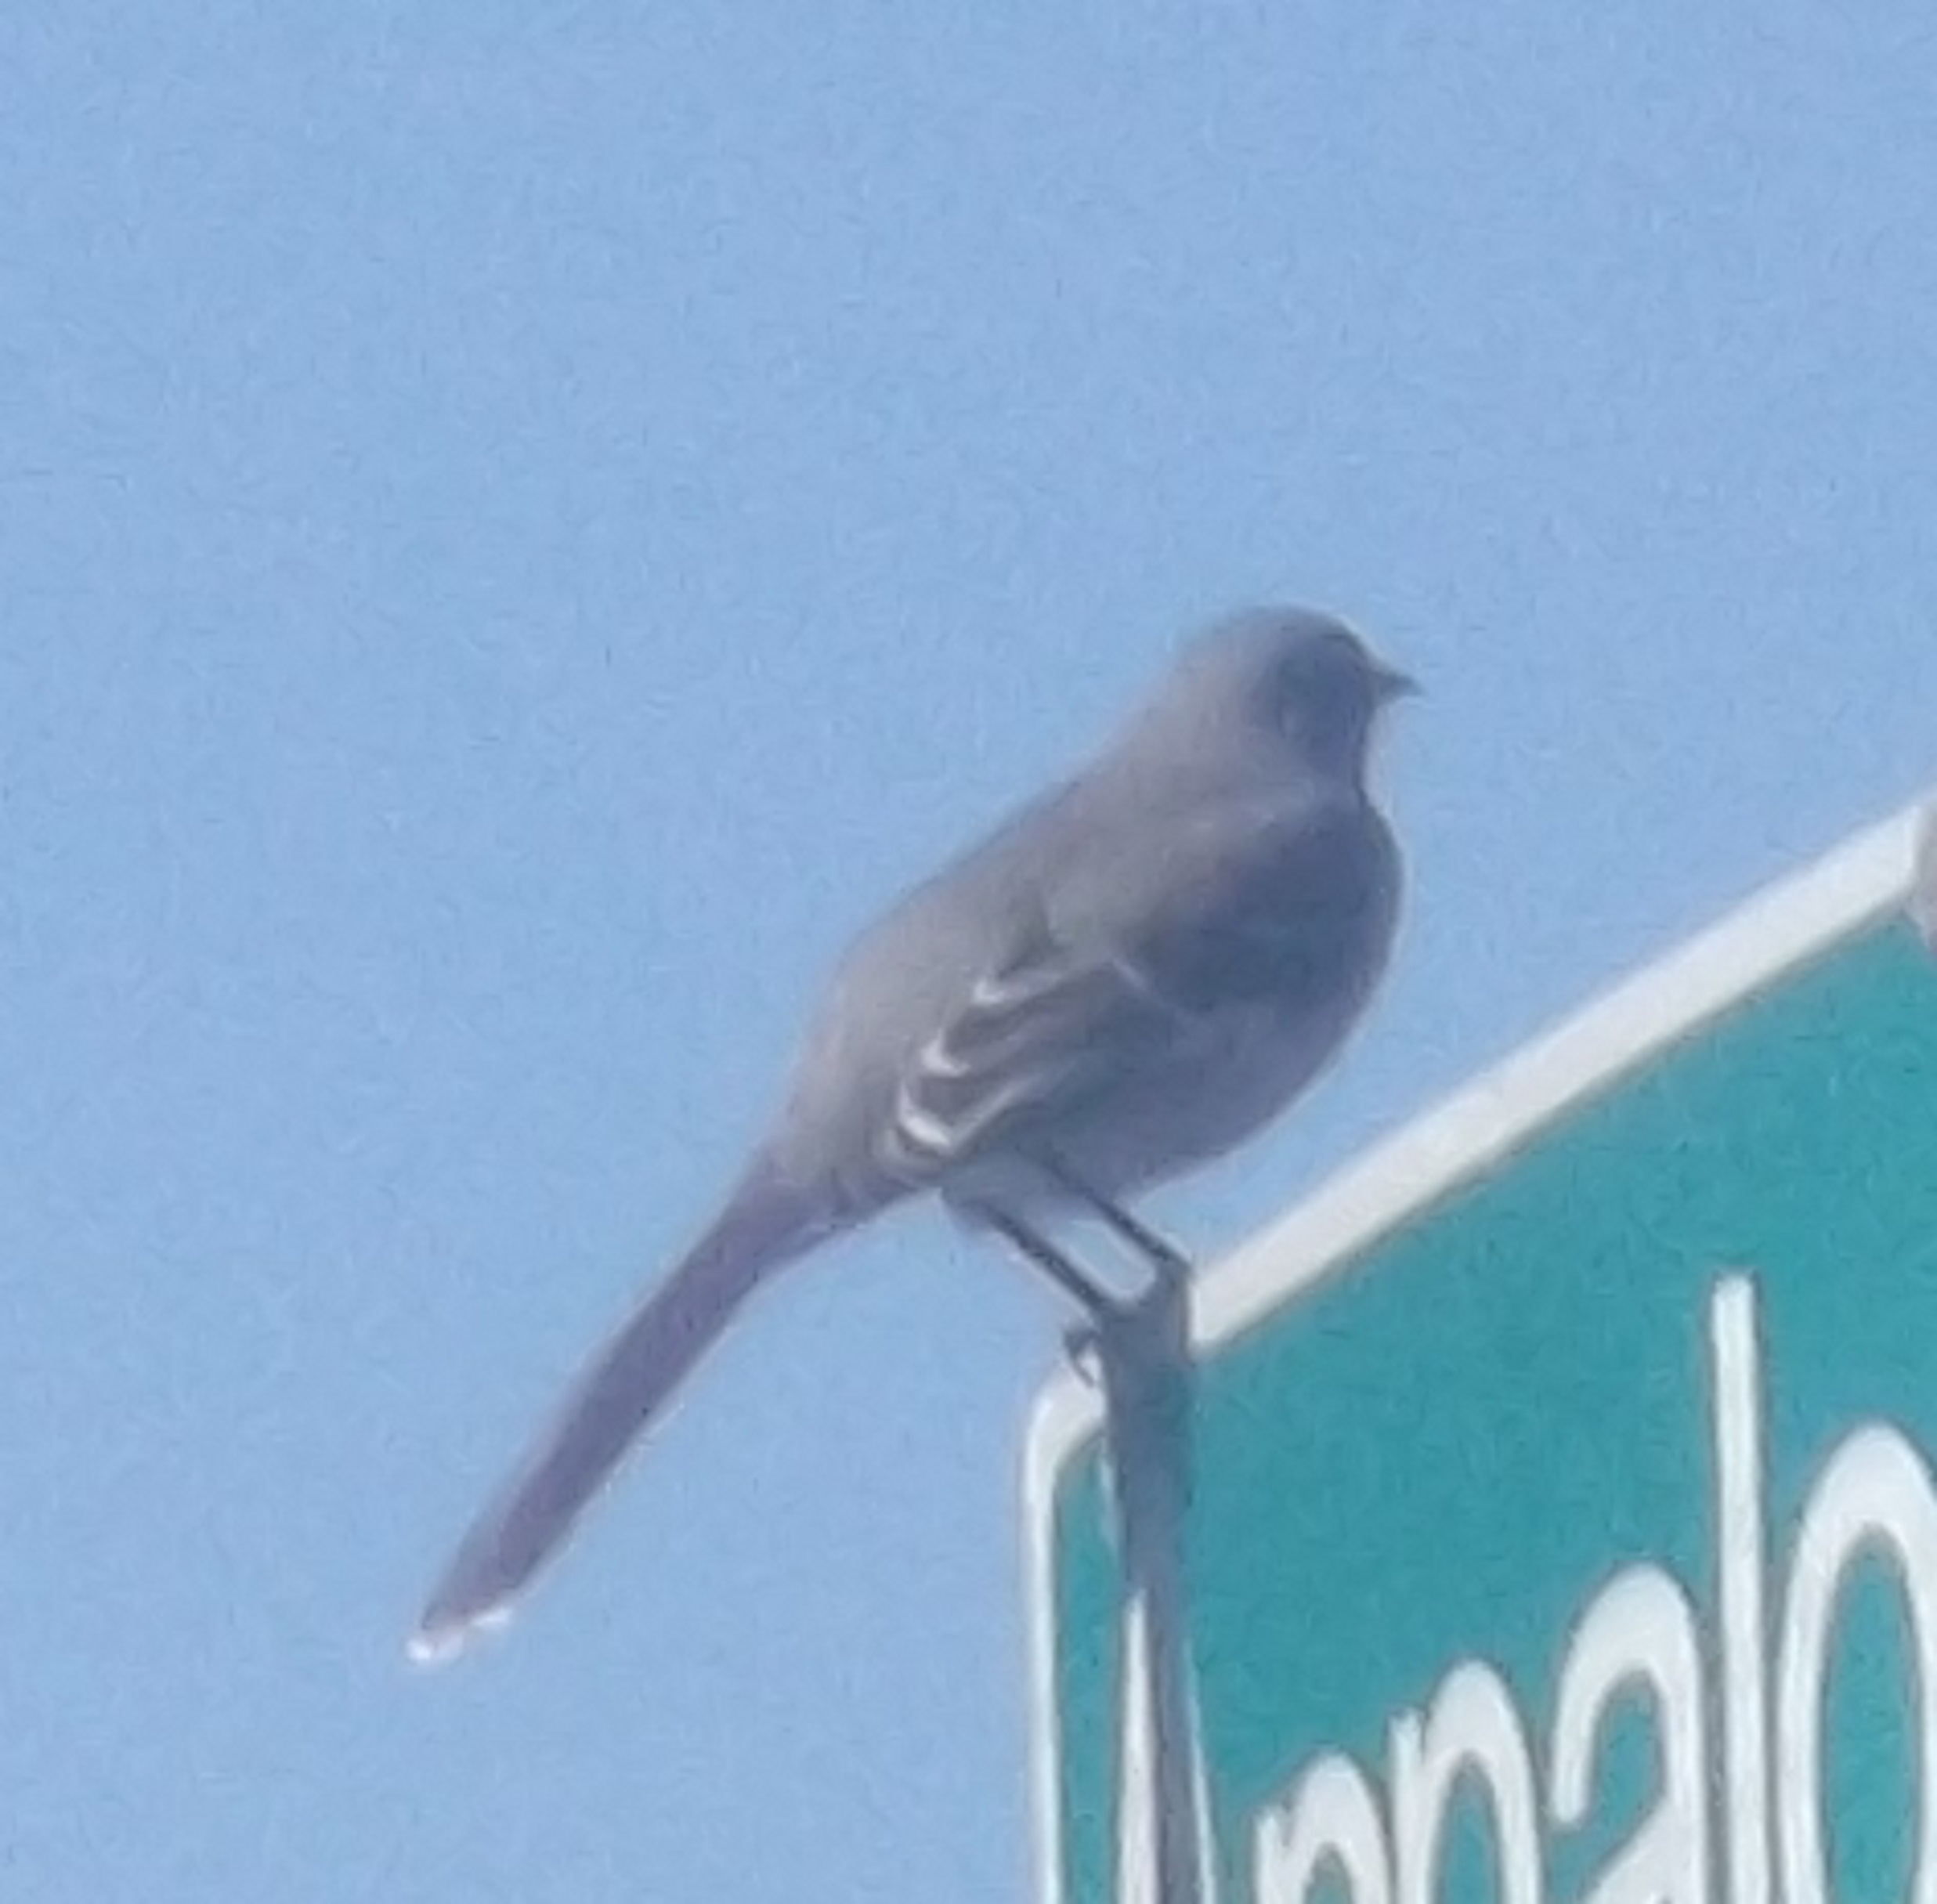 Photo of a bird I took on the street sign. 3-7-17